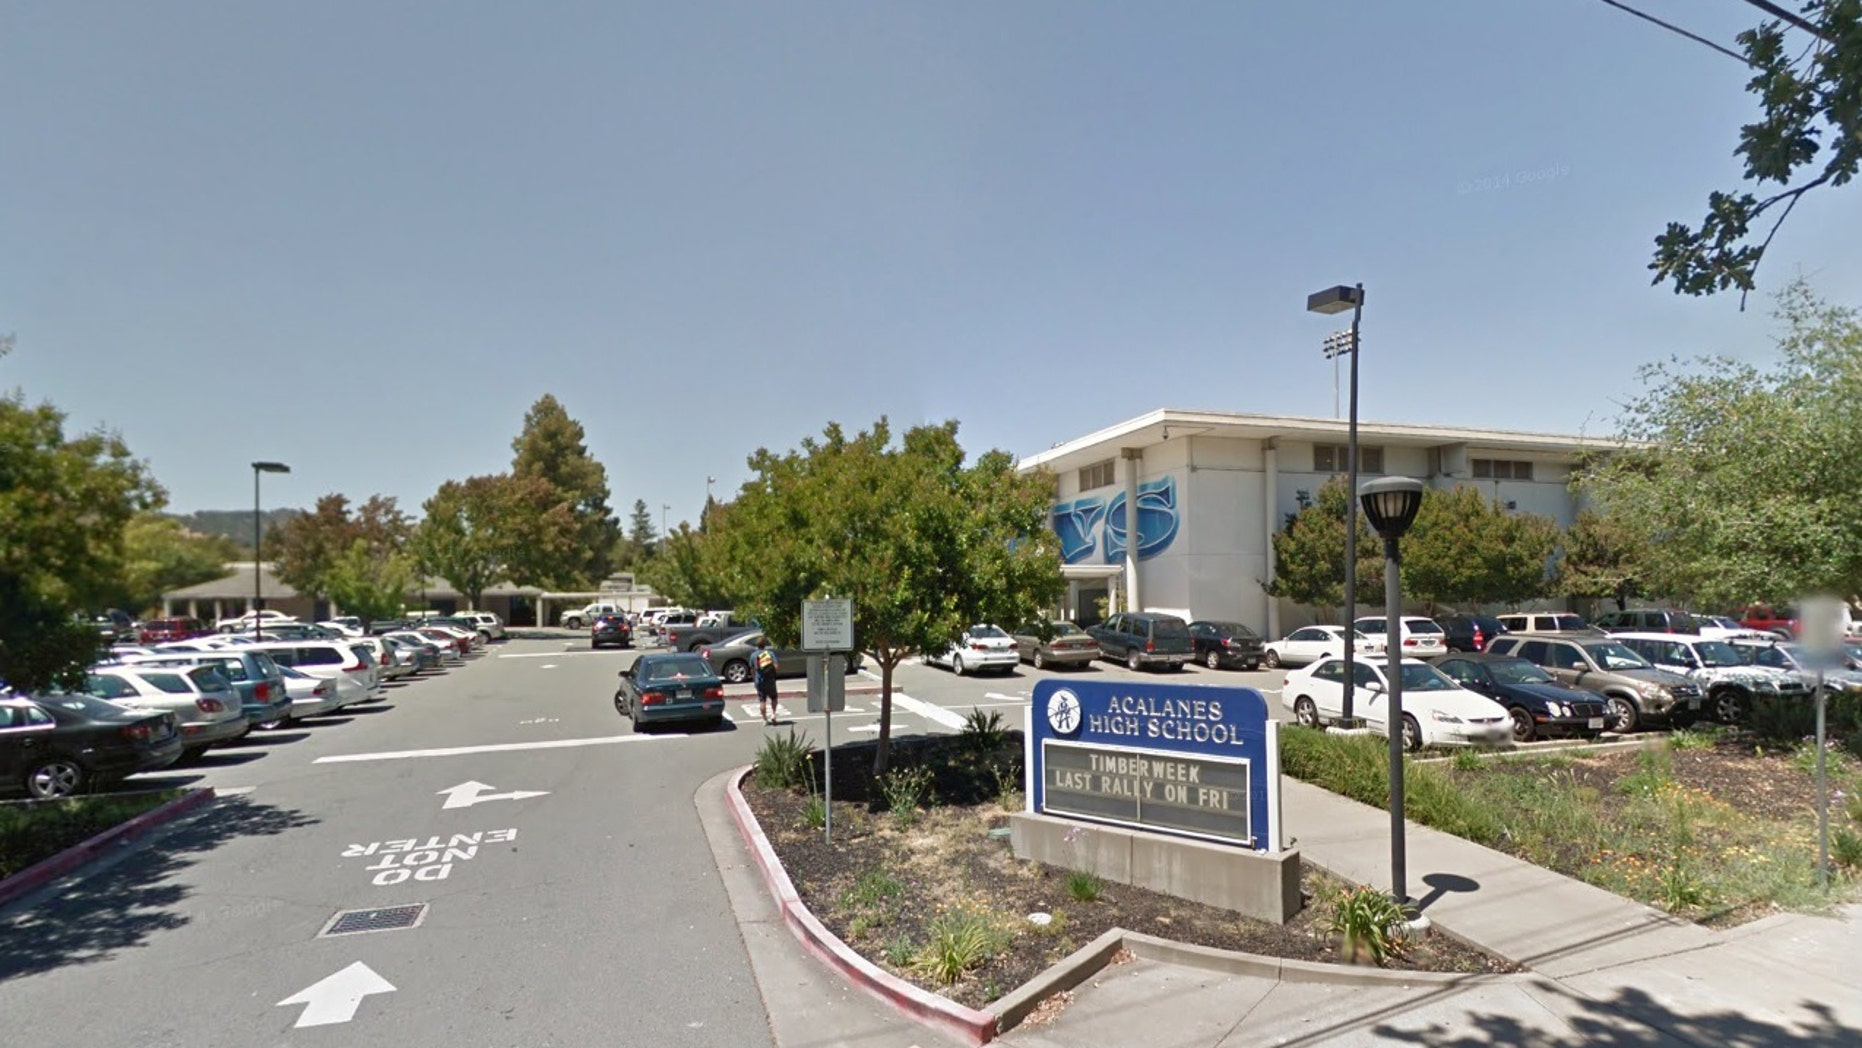 """Two of the sex ed instructors at Acalanes High School in Lafayette, CA hold questionable day jobs with one who conducts sex toy workshops at a local porn shop and another who dubbed herself a """"pleasure activist."""""""